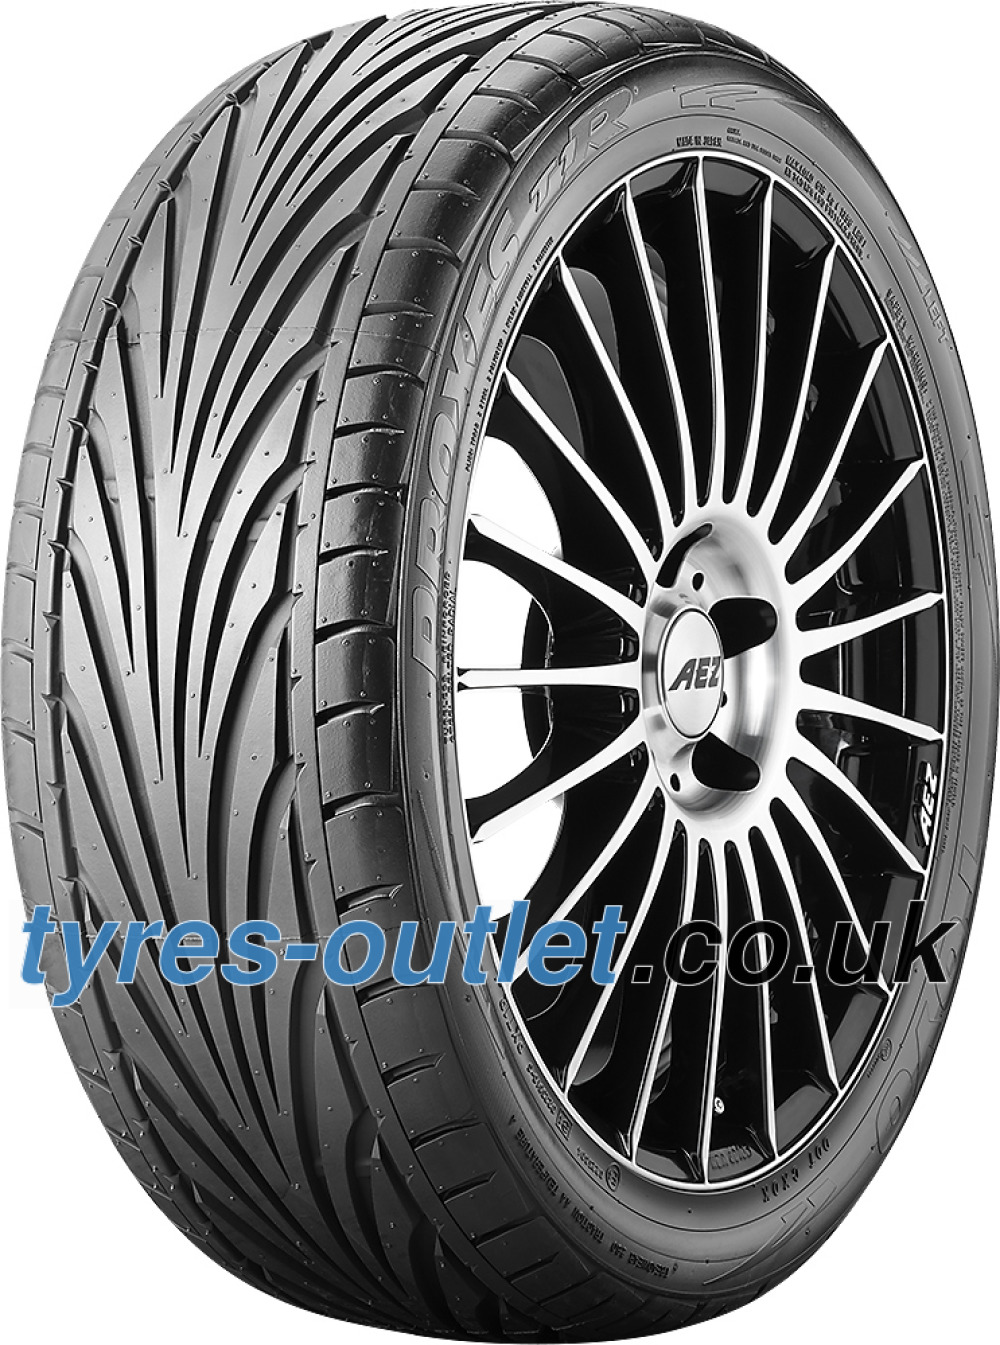 Toyo Proxes T1-R ( 215/45 R15 84V with rim protection ridge (FSL) )